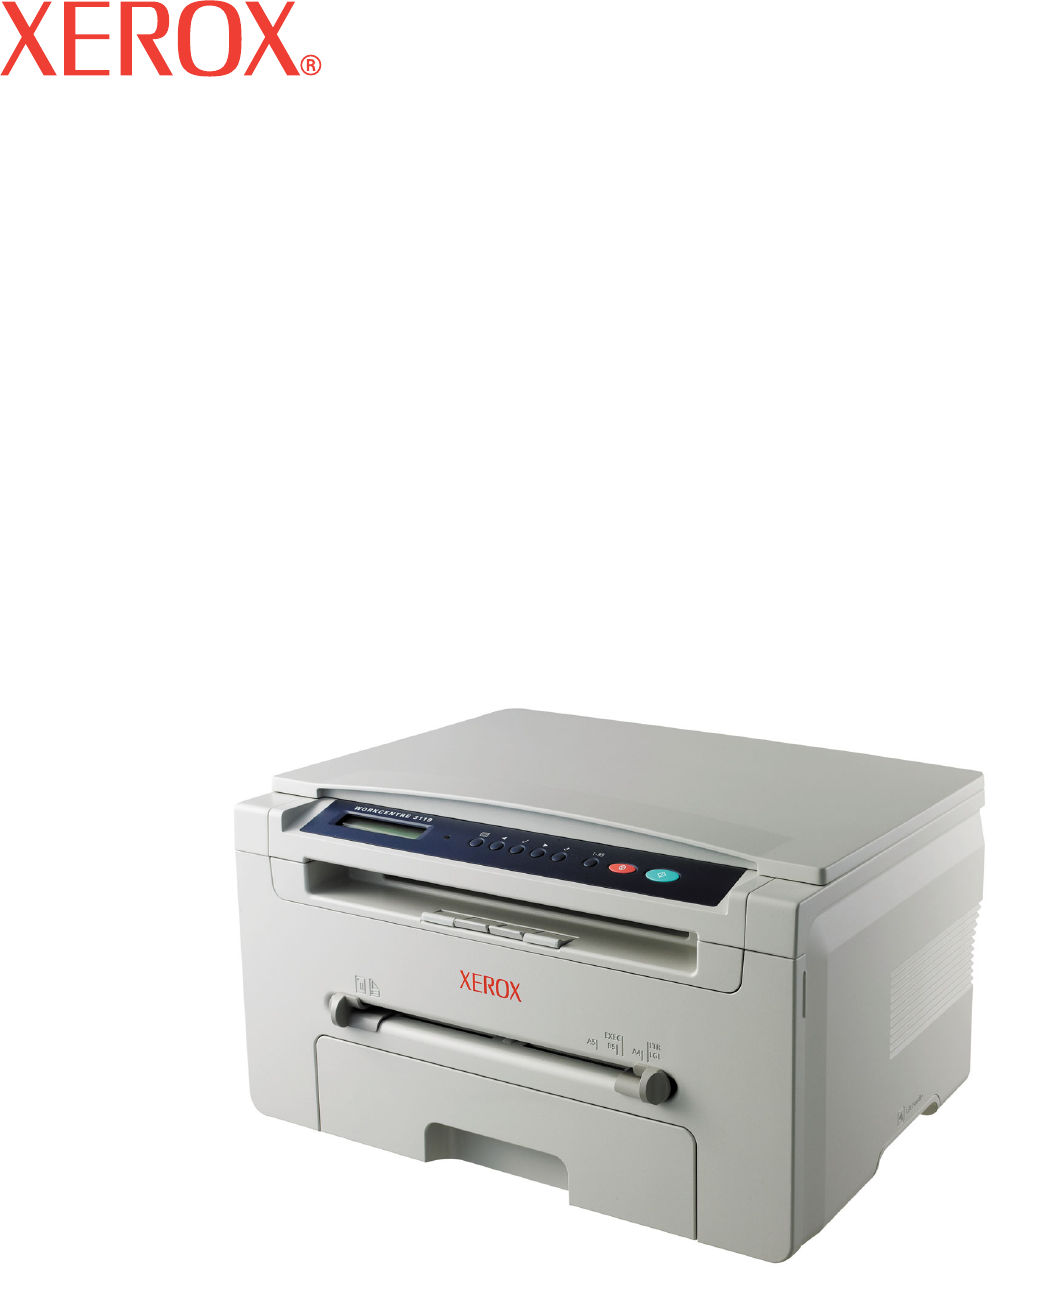 Workcentre 3119 drivers amp downloads xerox support and